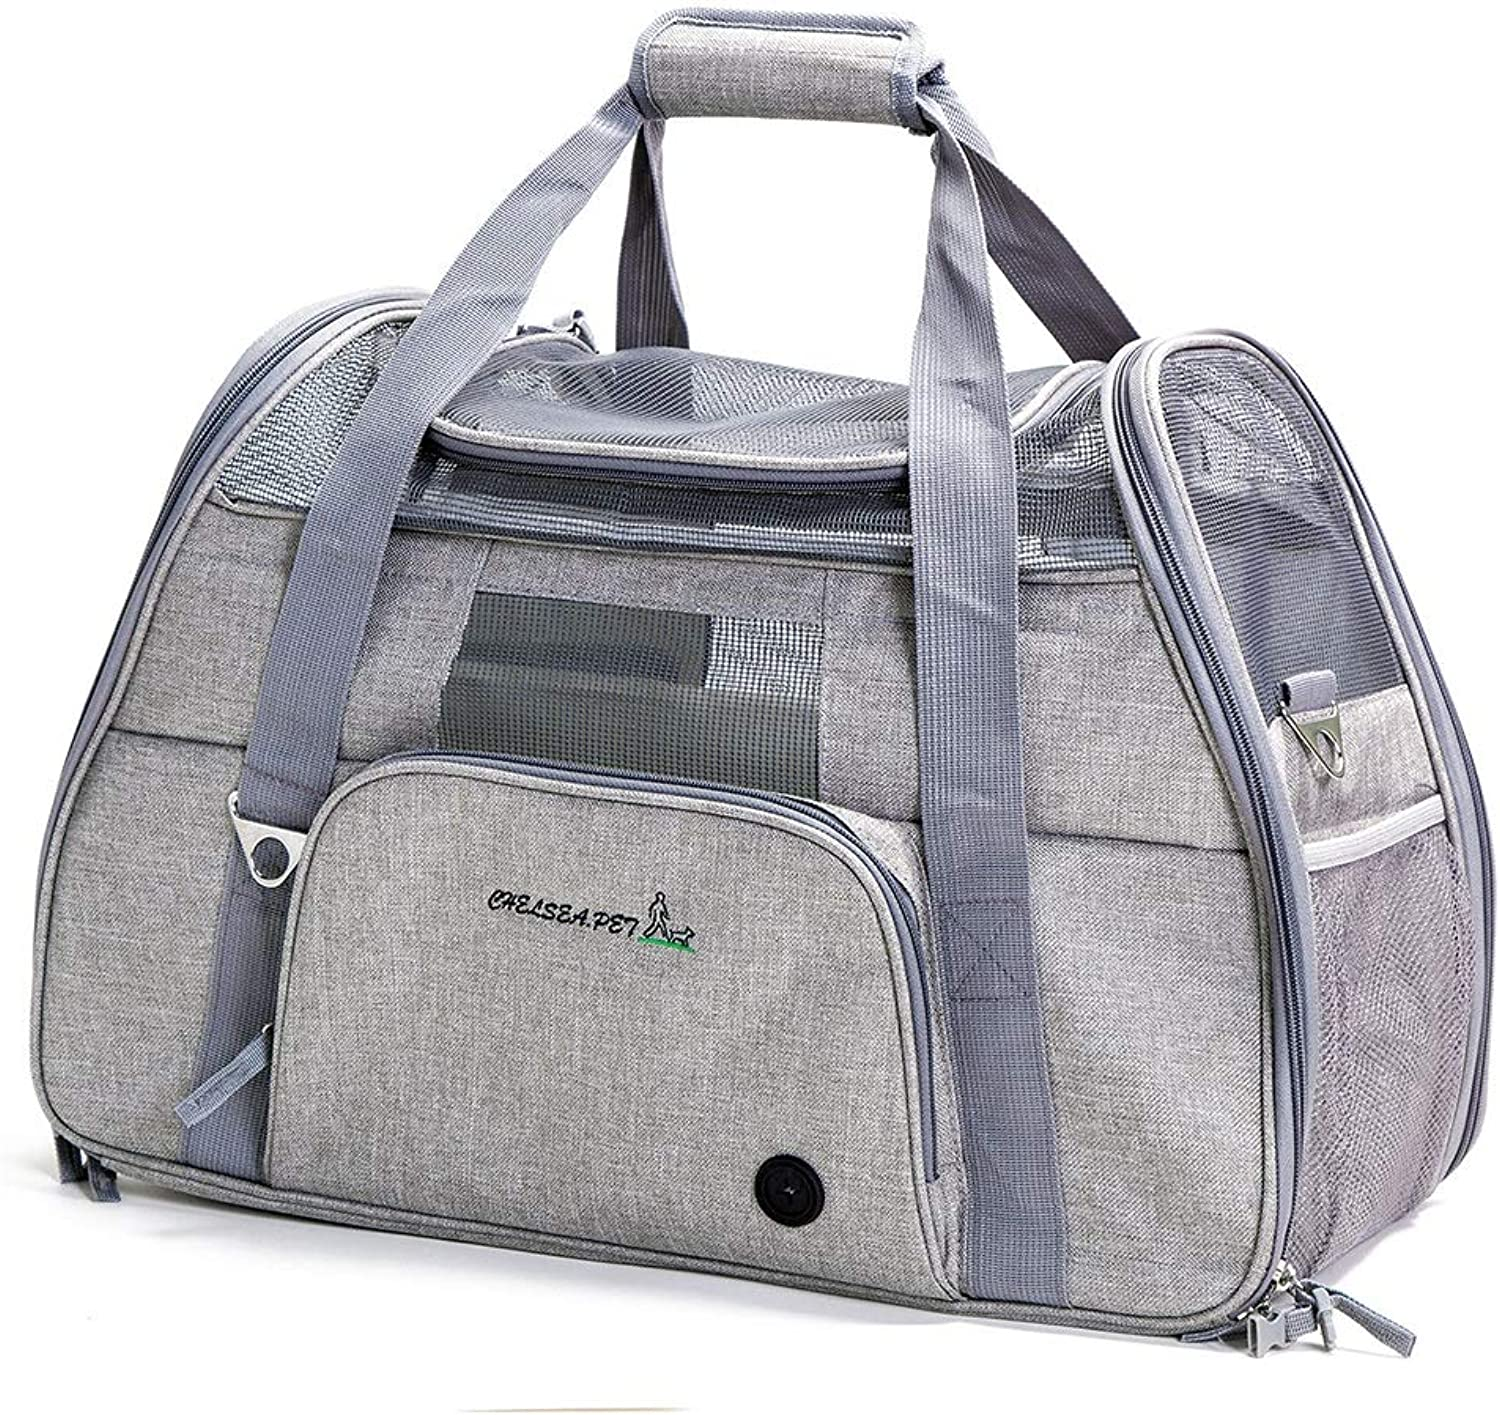 ETH Badminton Shoulder Oxford Cloth Pet Out Of The Cat Bag Foldable Pet Bag Out Of The Carrying Case (color   Grey white)